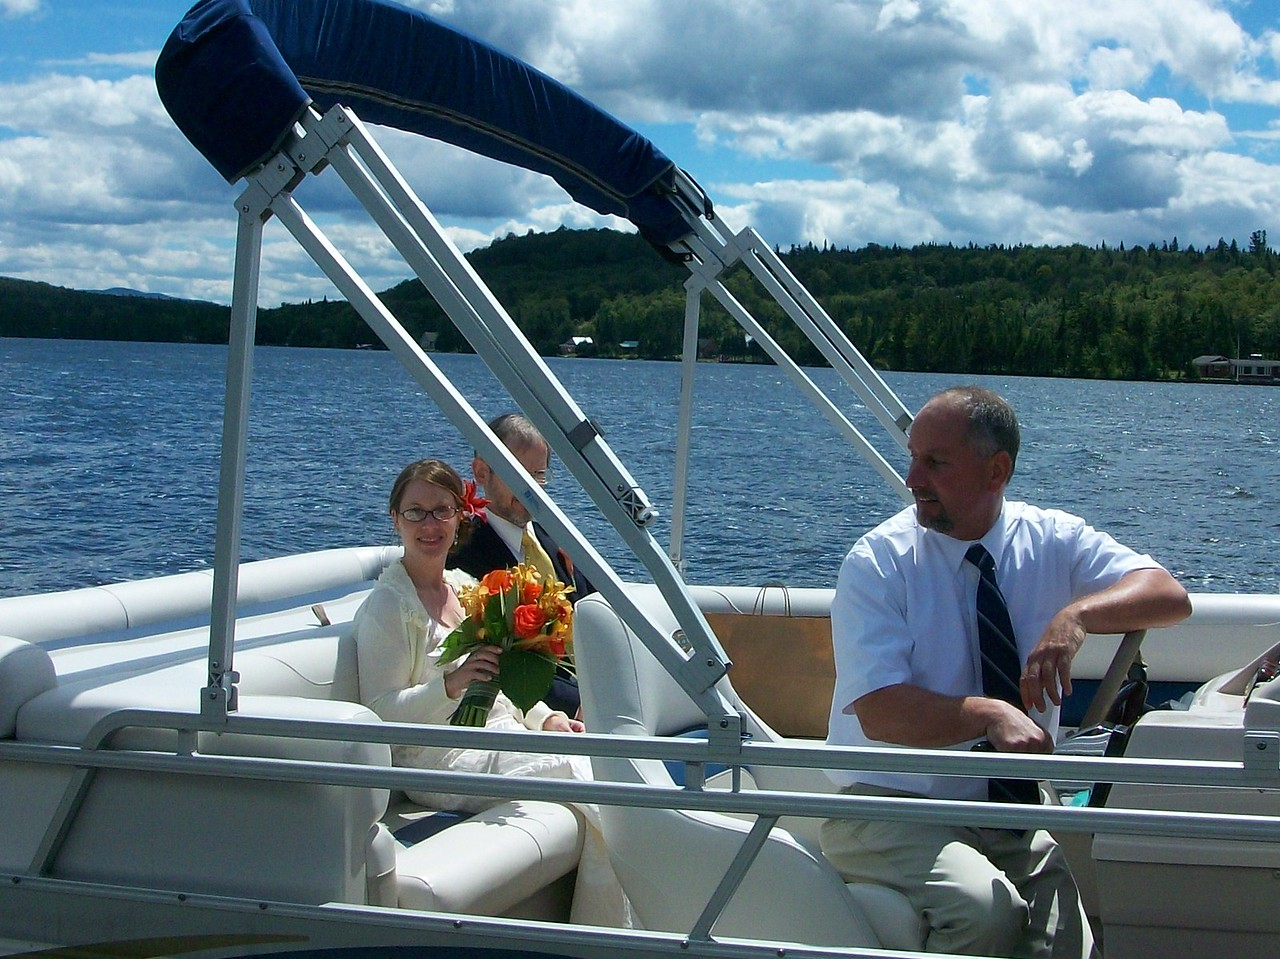 A beautiful day to have a wedding on Back Lake, Pittsburg, NH. The Darosa Wedding, August 7th, 2010